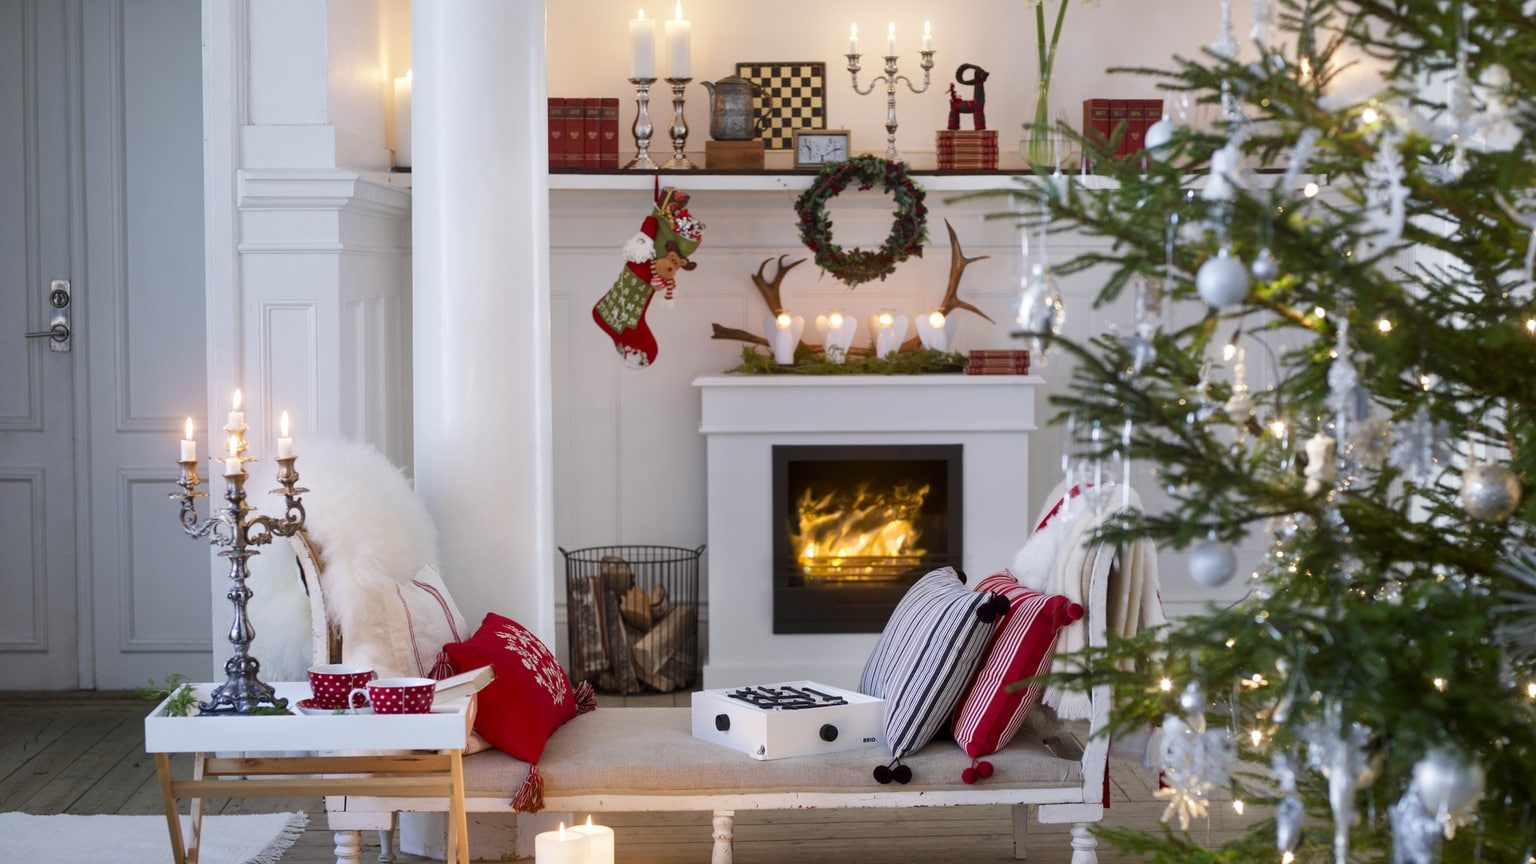 Stylish modern living room decorated for Christmas holiday